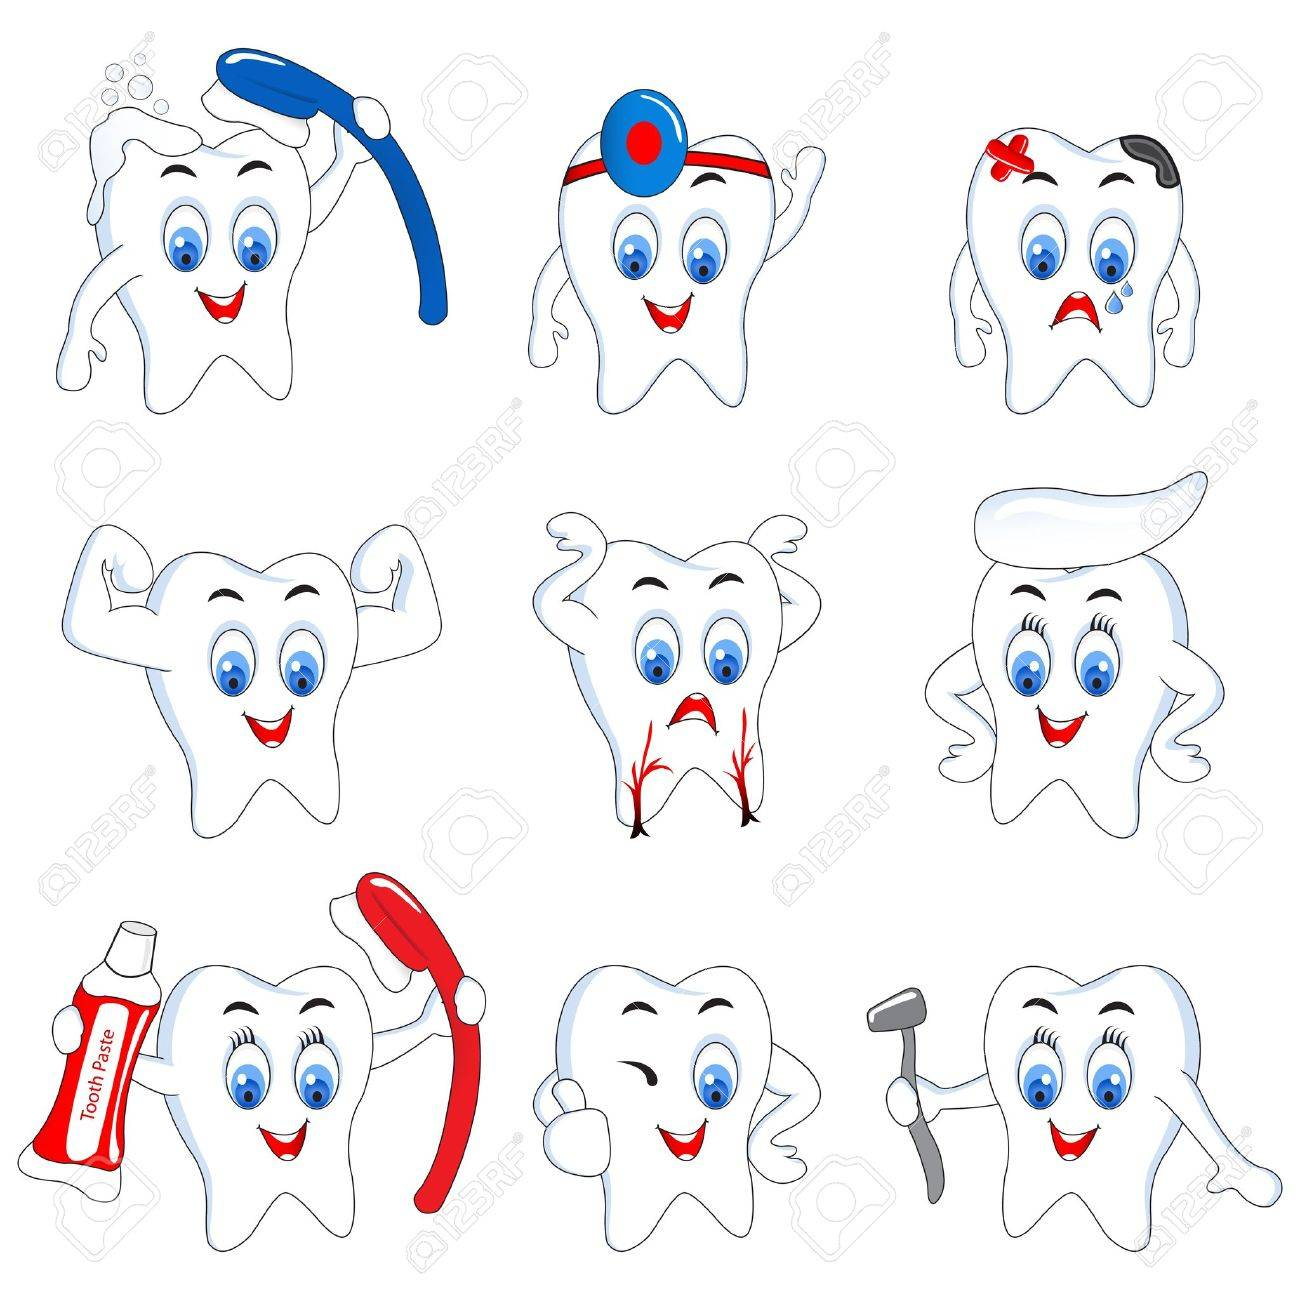 Tooth Activity - 13955599